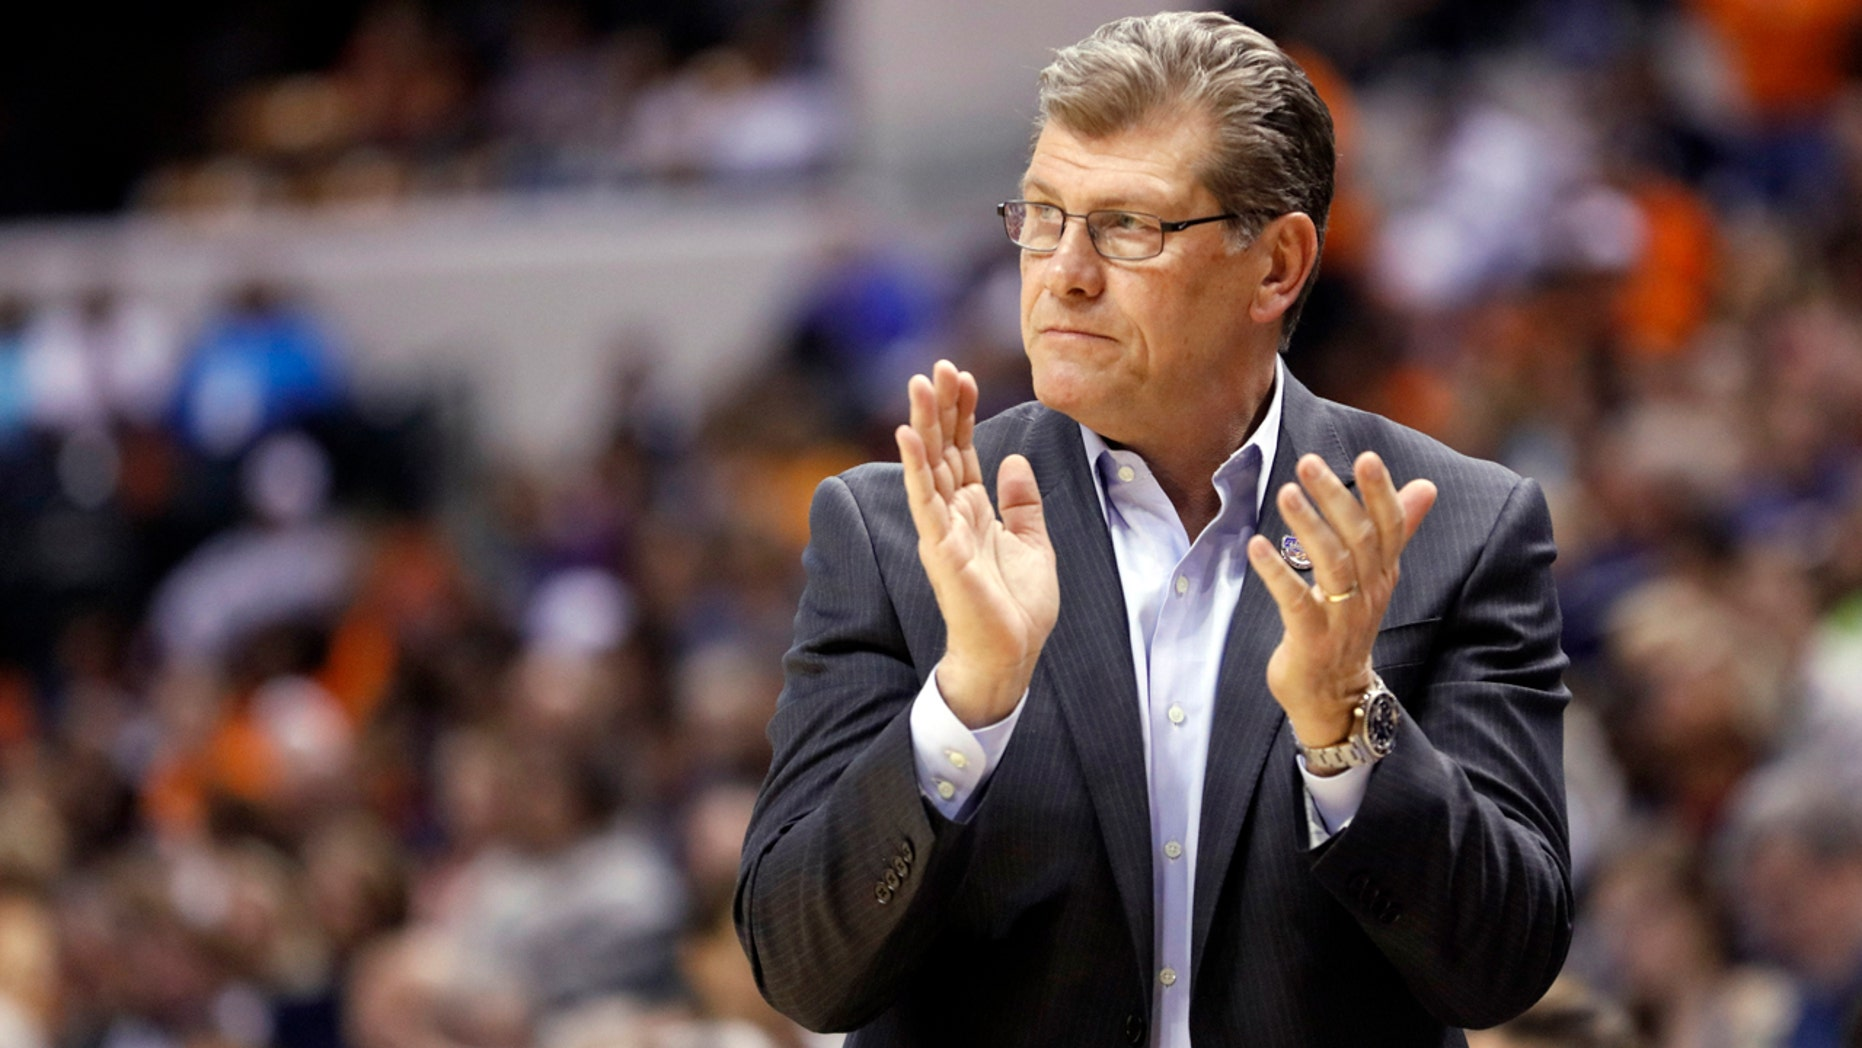 April 3, 2016: Connecticut head coach Geno Auriemma cheers for his team during the second half of the Huskies' women's Final Four game against Oregon State in Indianapolis.